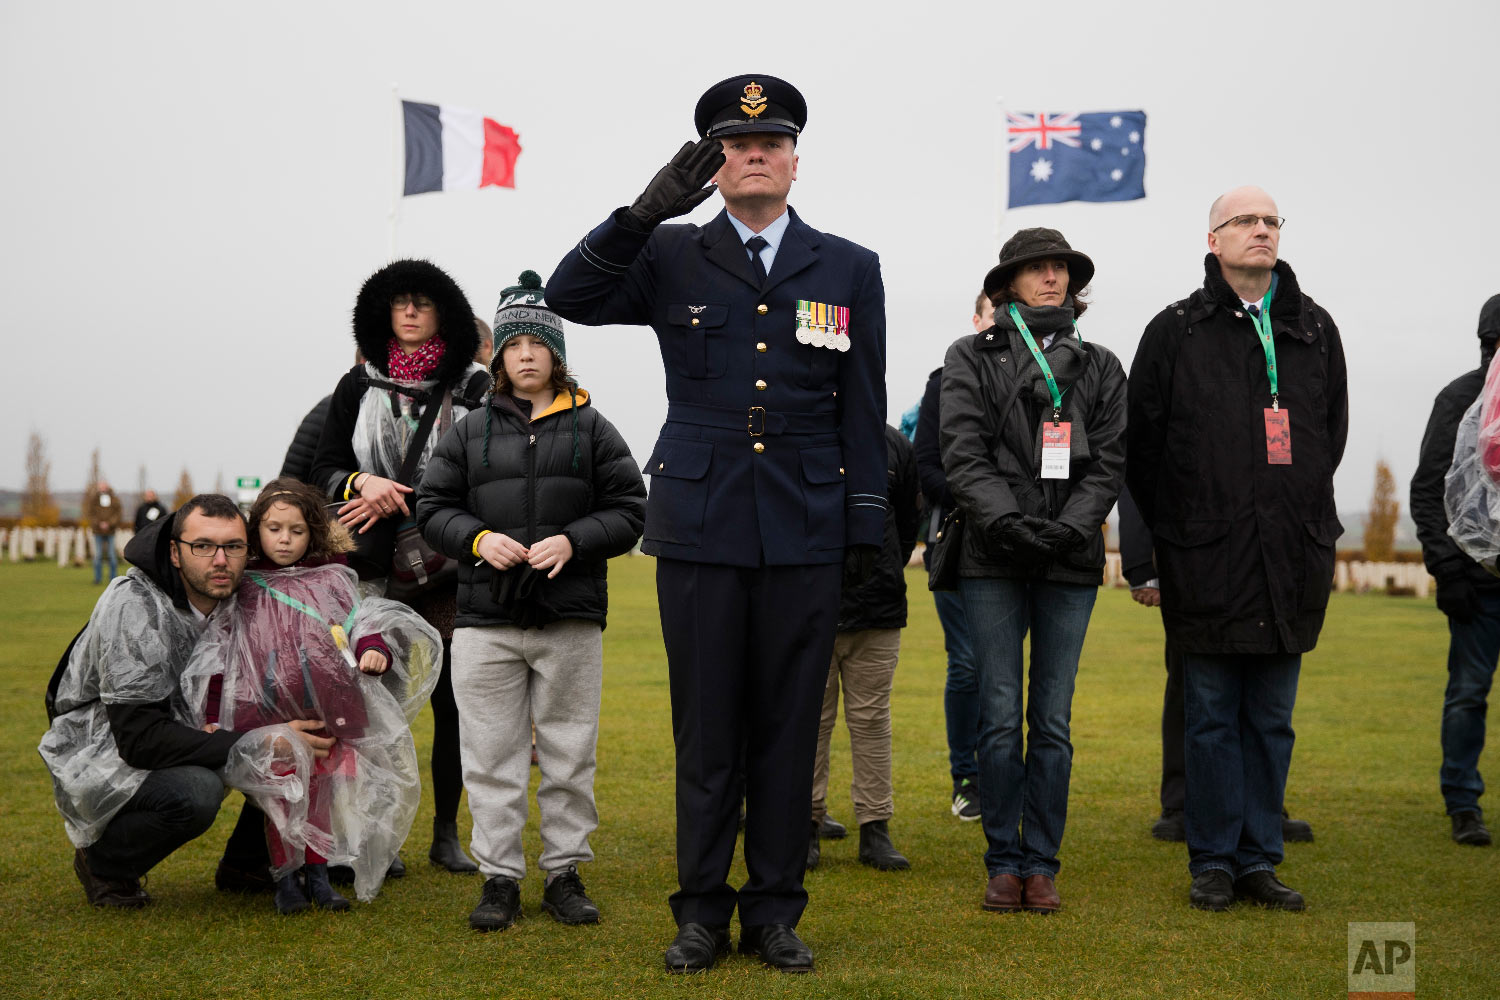 An Australian soldier listens along with visitors as French and Australian national anthems are played during an Armistice ceremony at the World War I Australian National Memorial in Villers-Bretonneux, France, Nov. 11, 2018. (AP Photo/Francisco Seco)